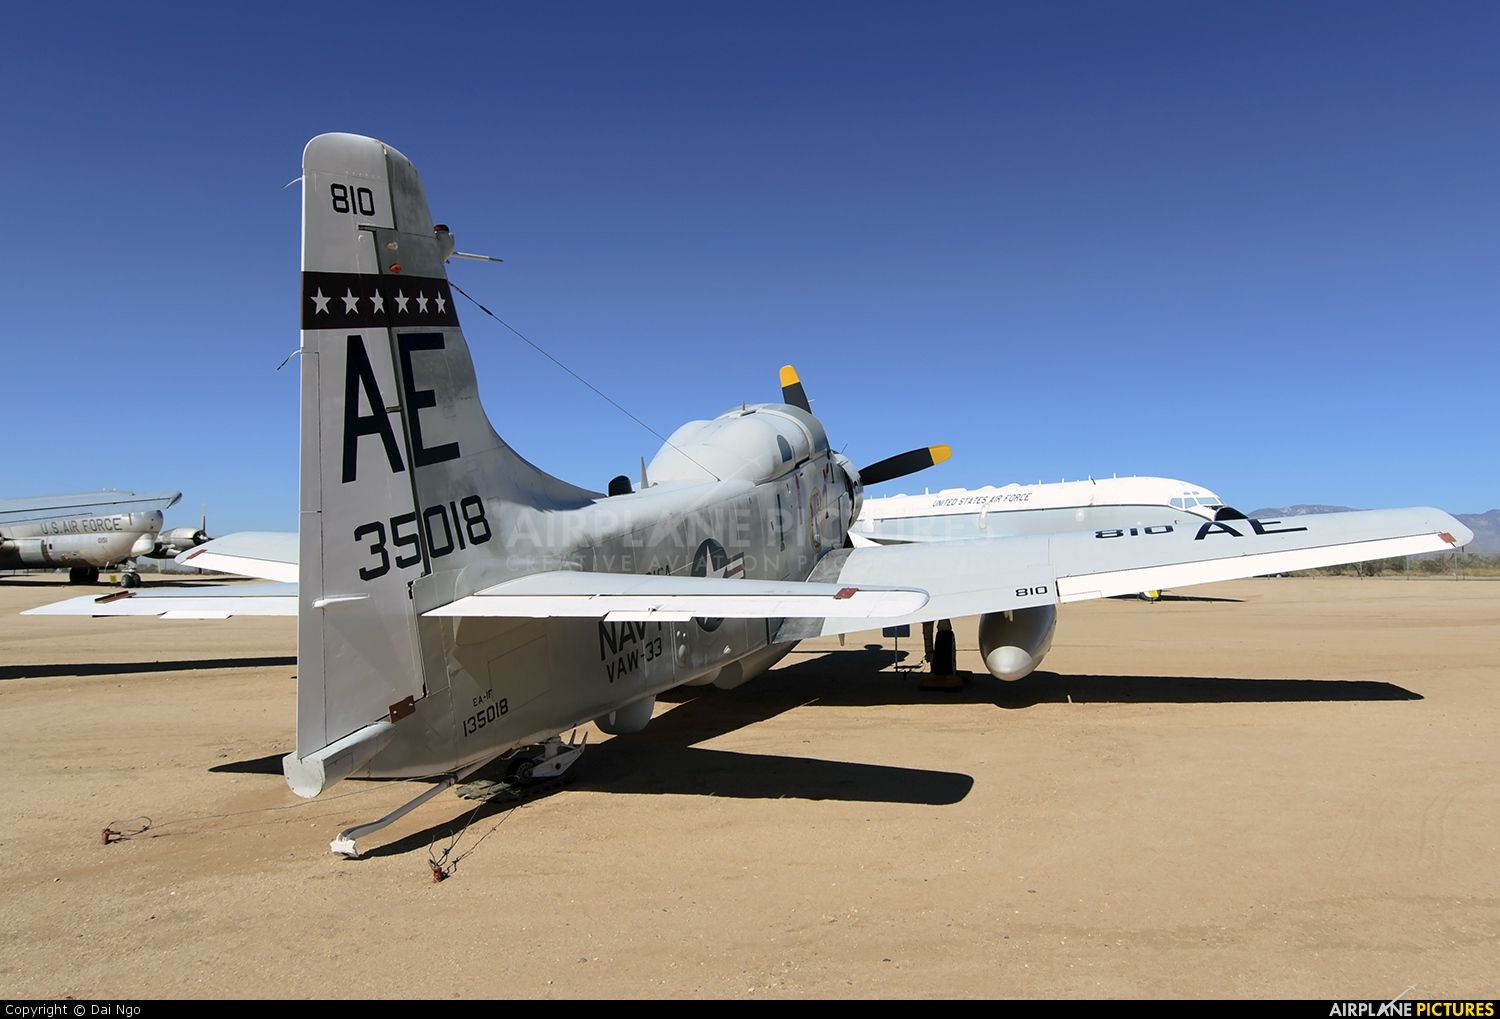 USA - Navy 135018 aircraft at Tucson - Pima Air & Space Museum